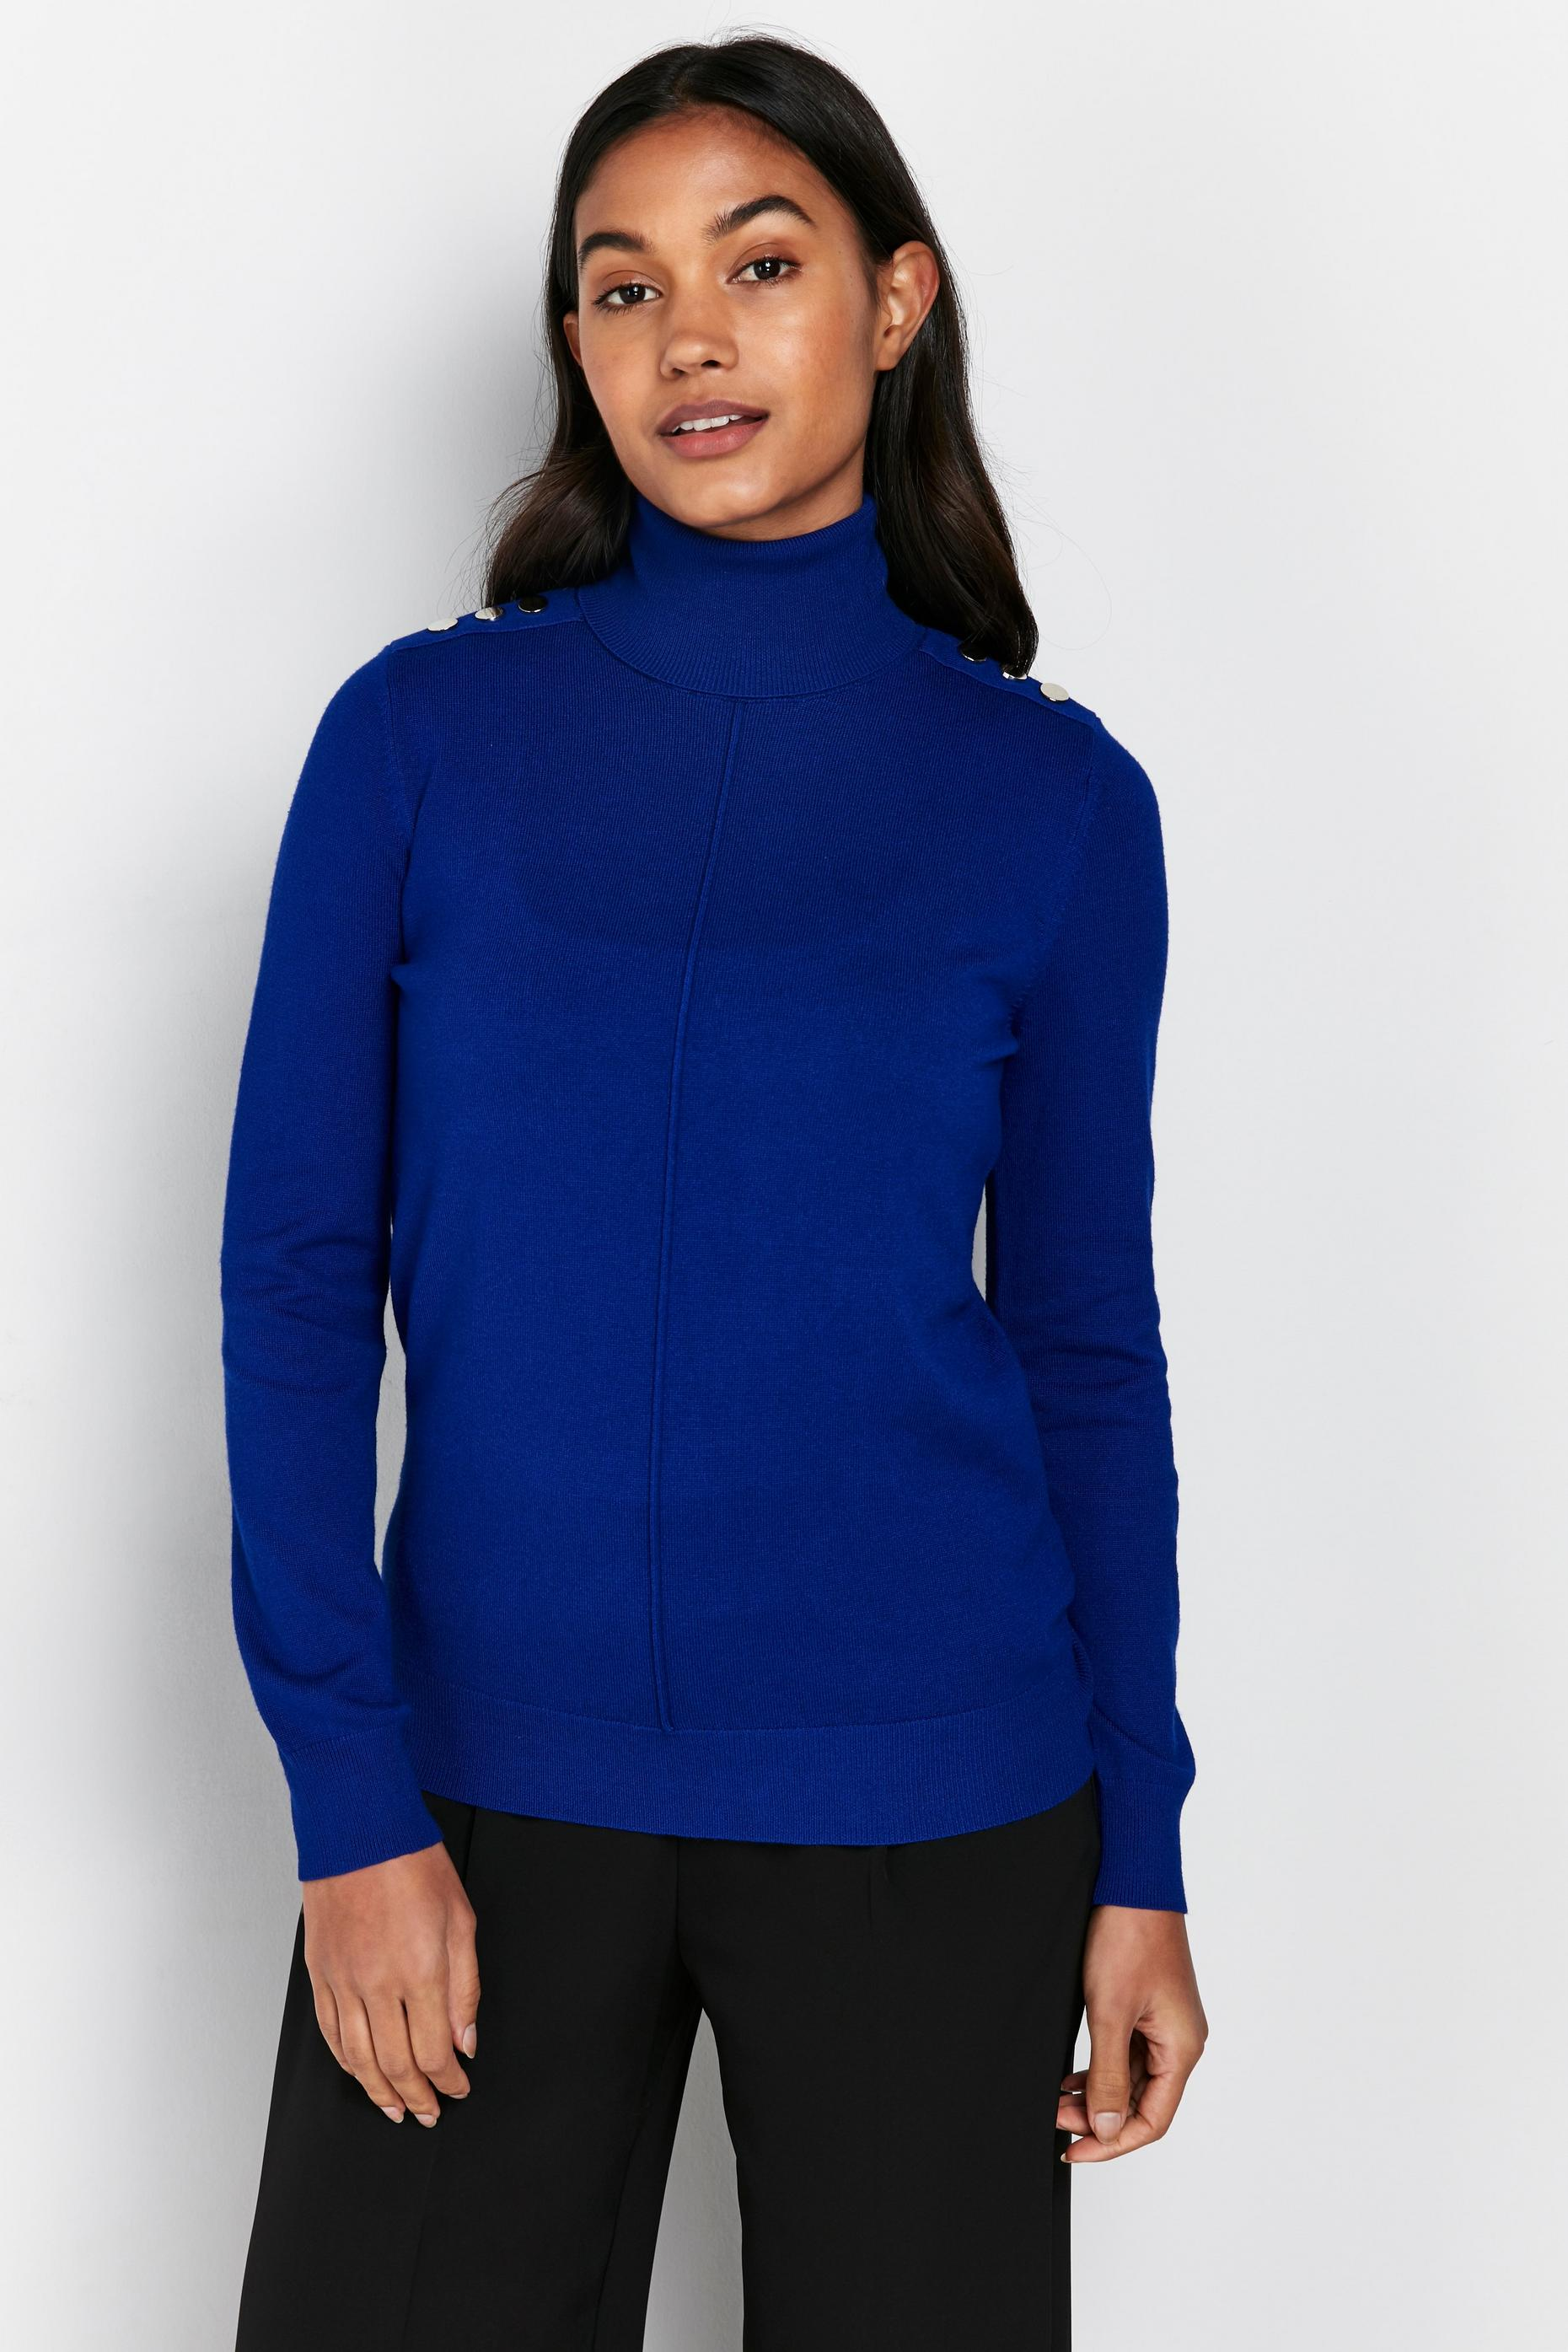 Blue Shoulder Stud High Neck Jumper